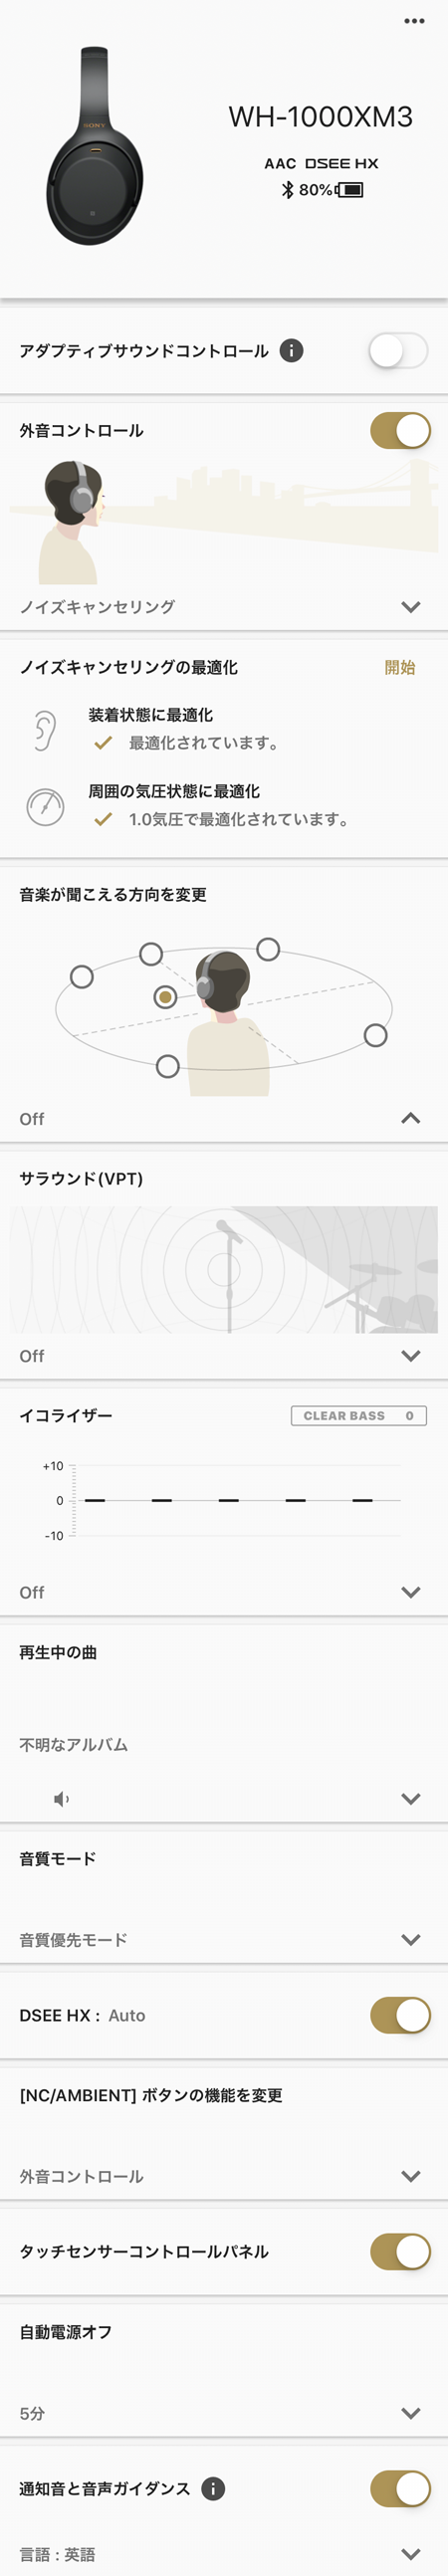 専用アプリ Headphones Connect